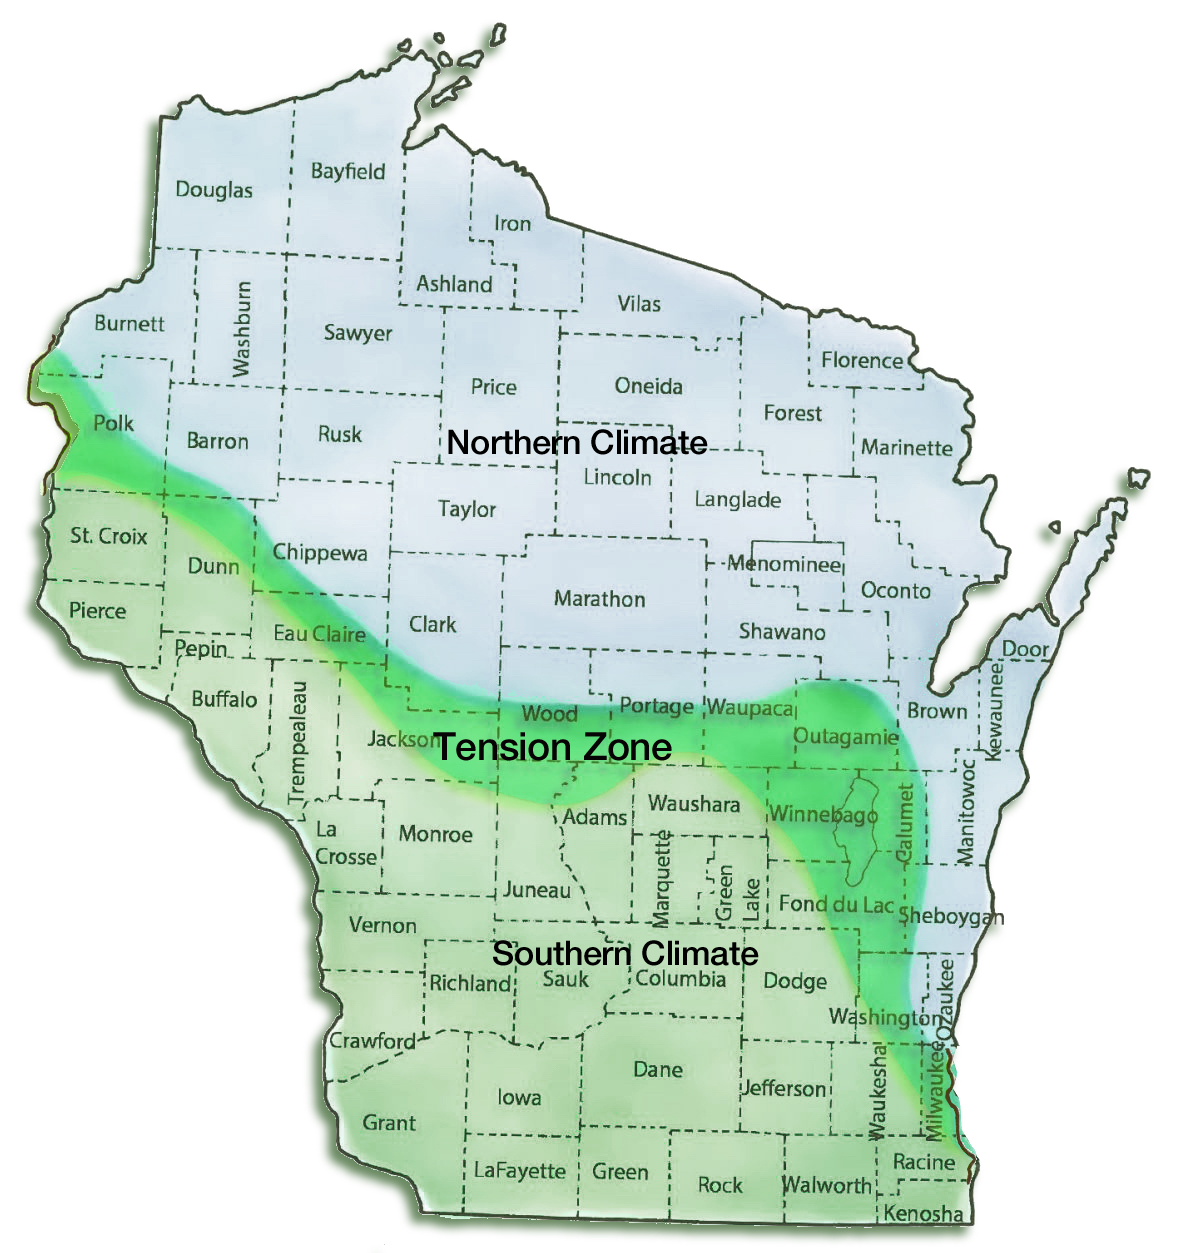 Wisconsin's Tension Zone map.